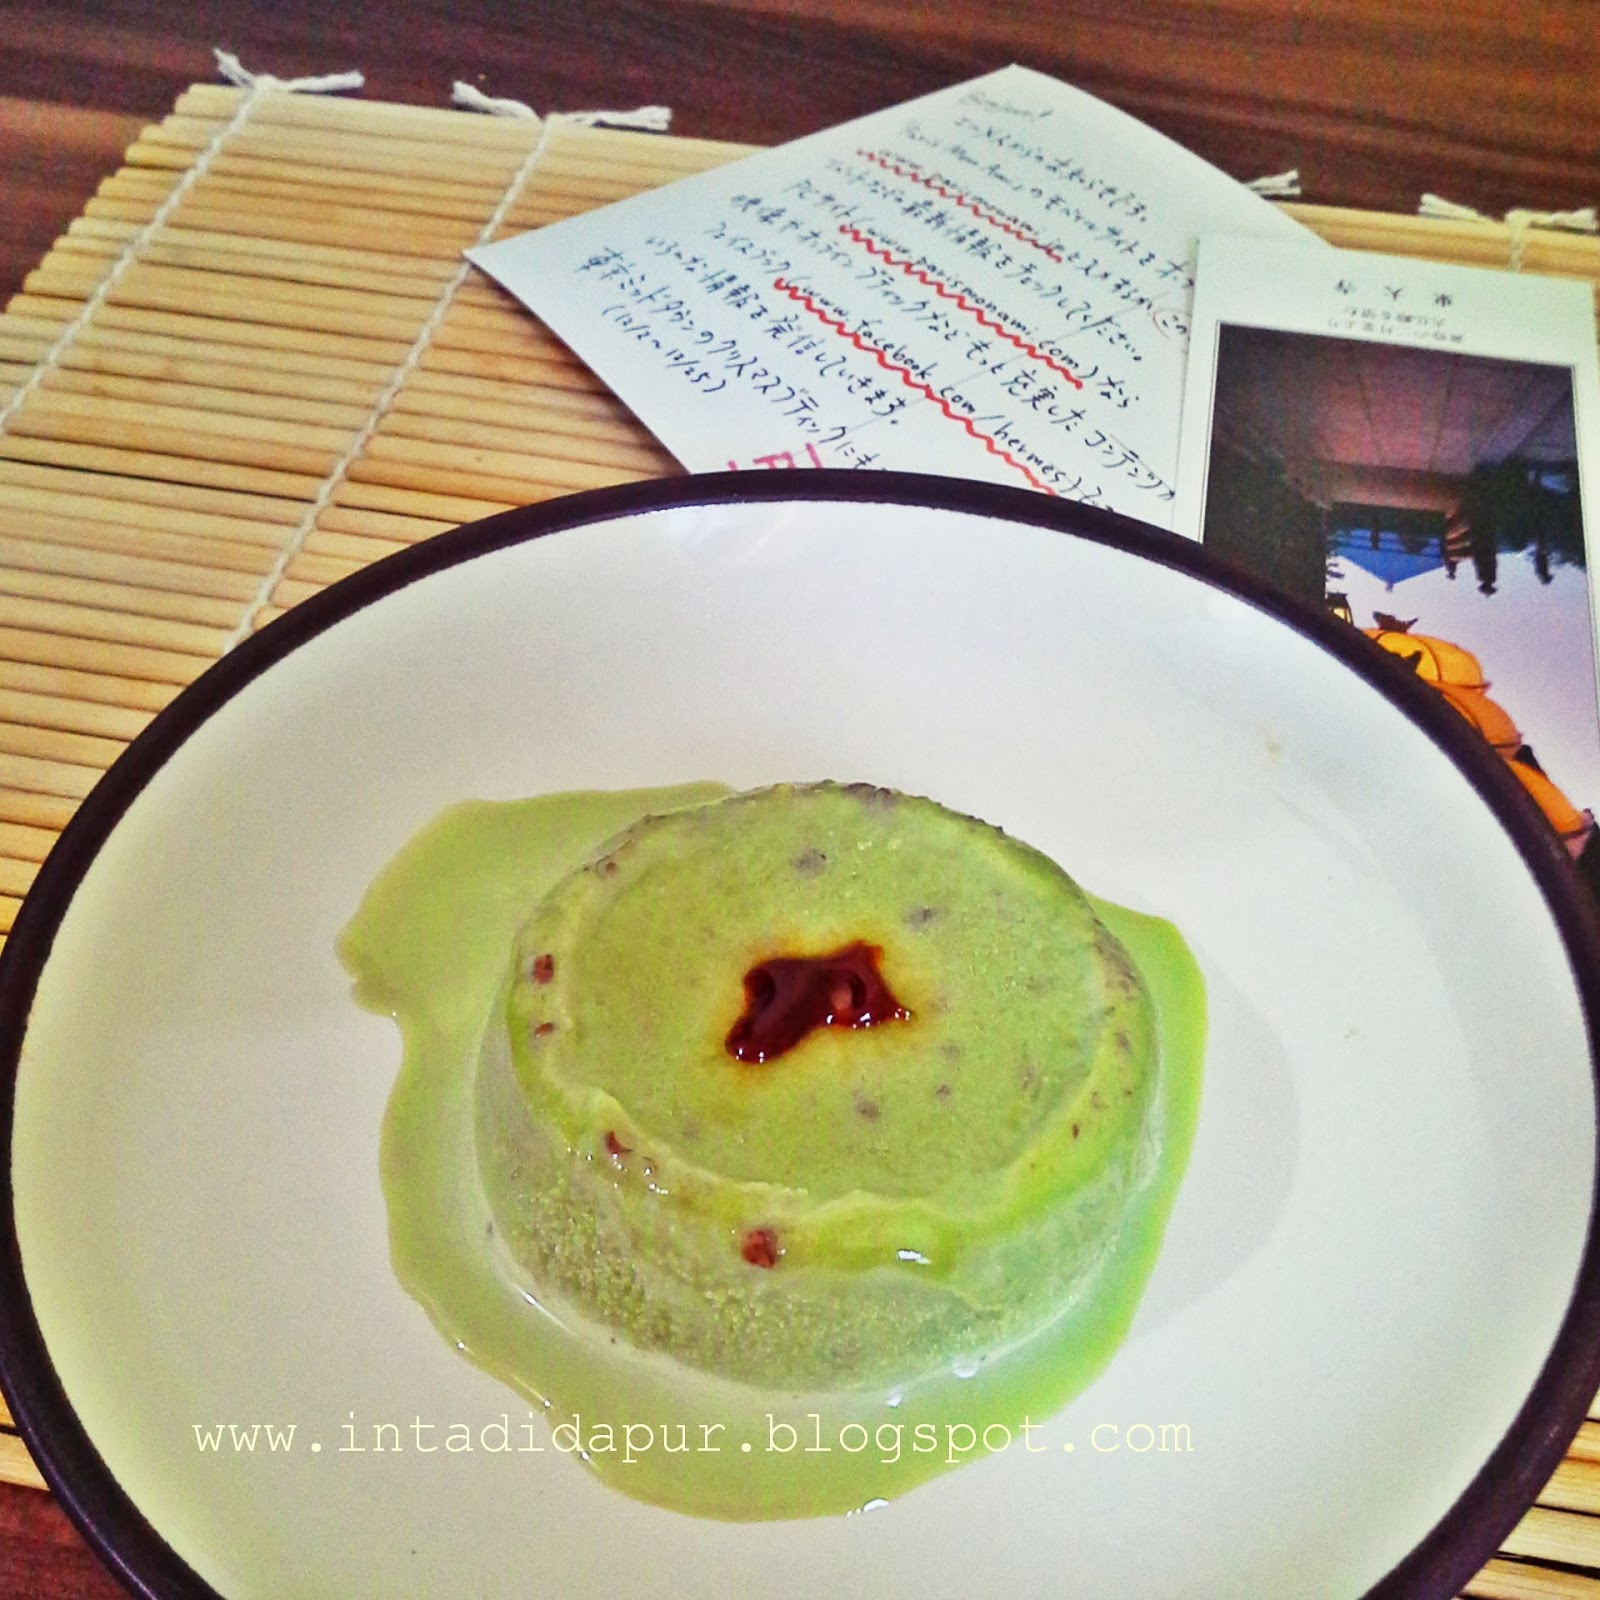 Having fun in the kitchen: Matcha Ogura Ice Cream